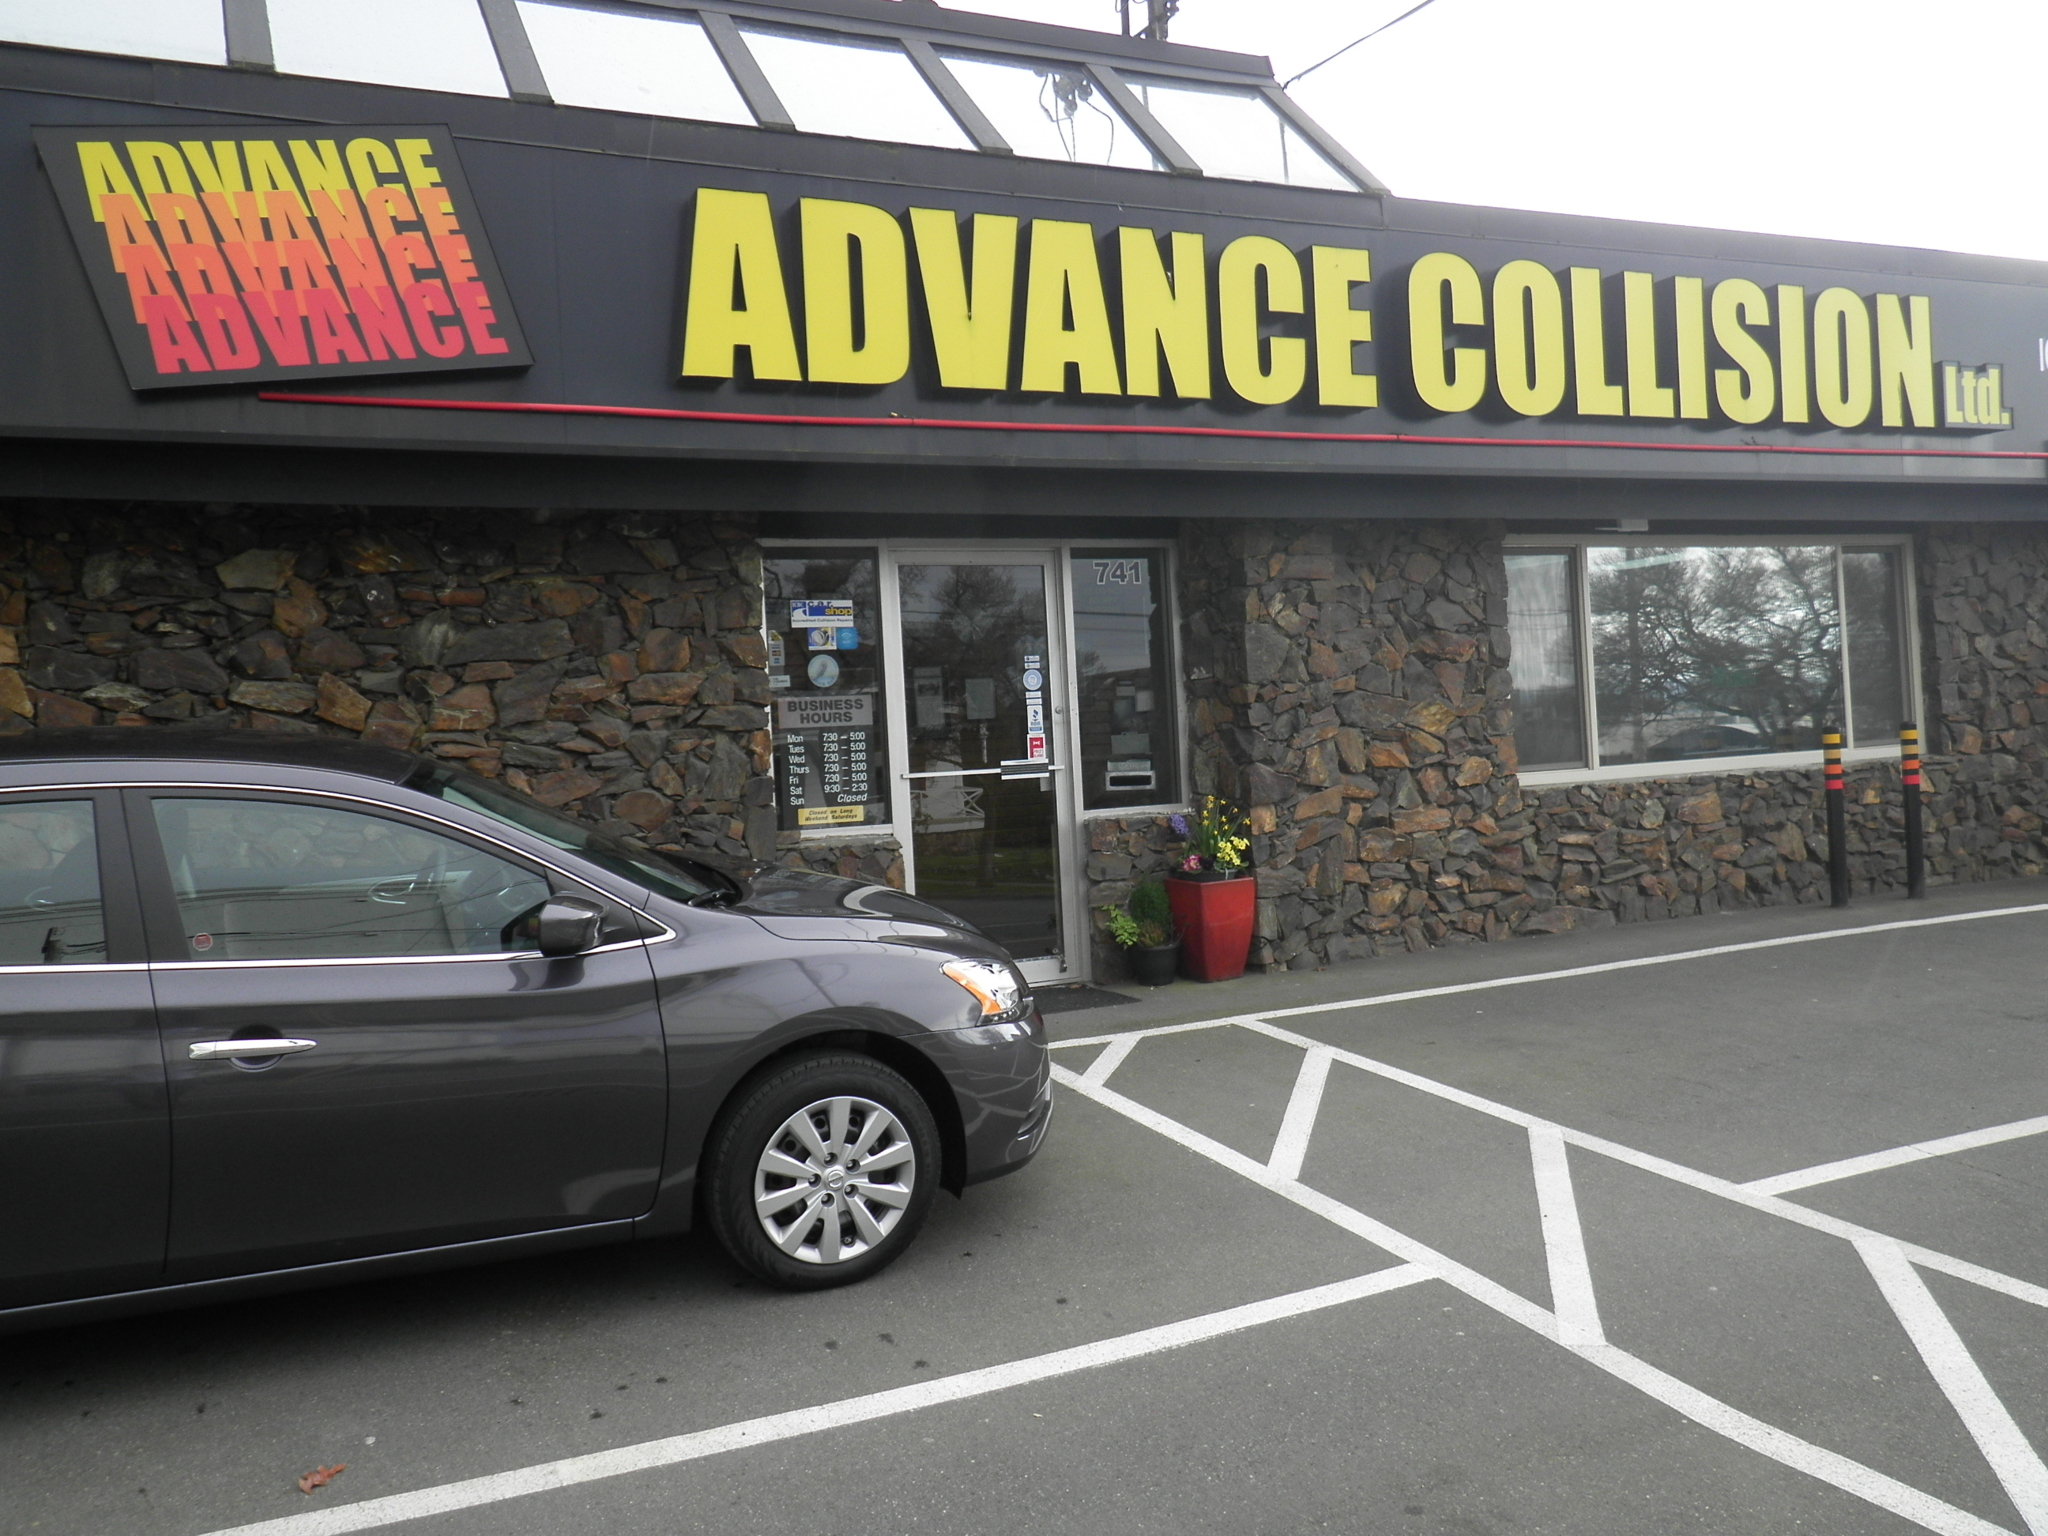 Advance Collision Ltd